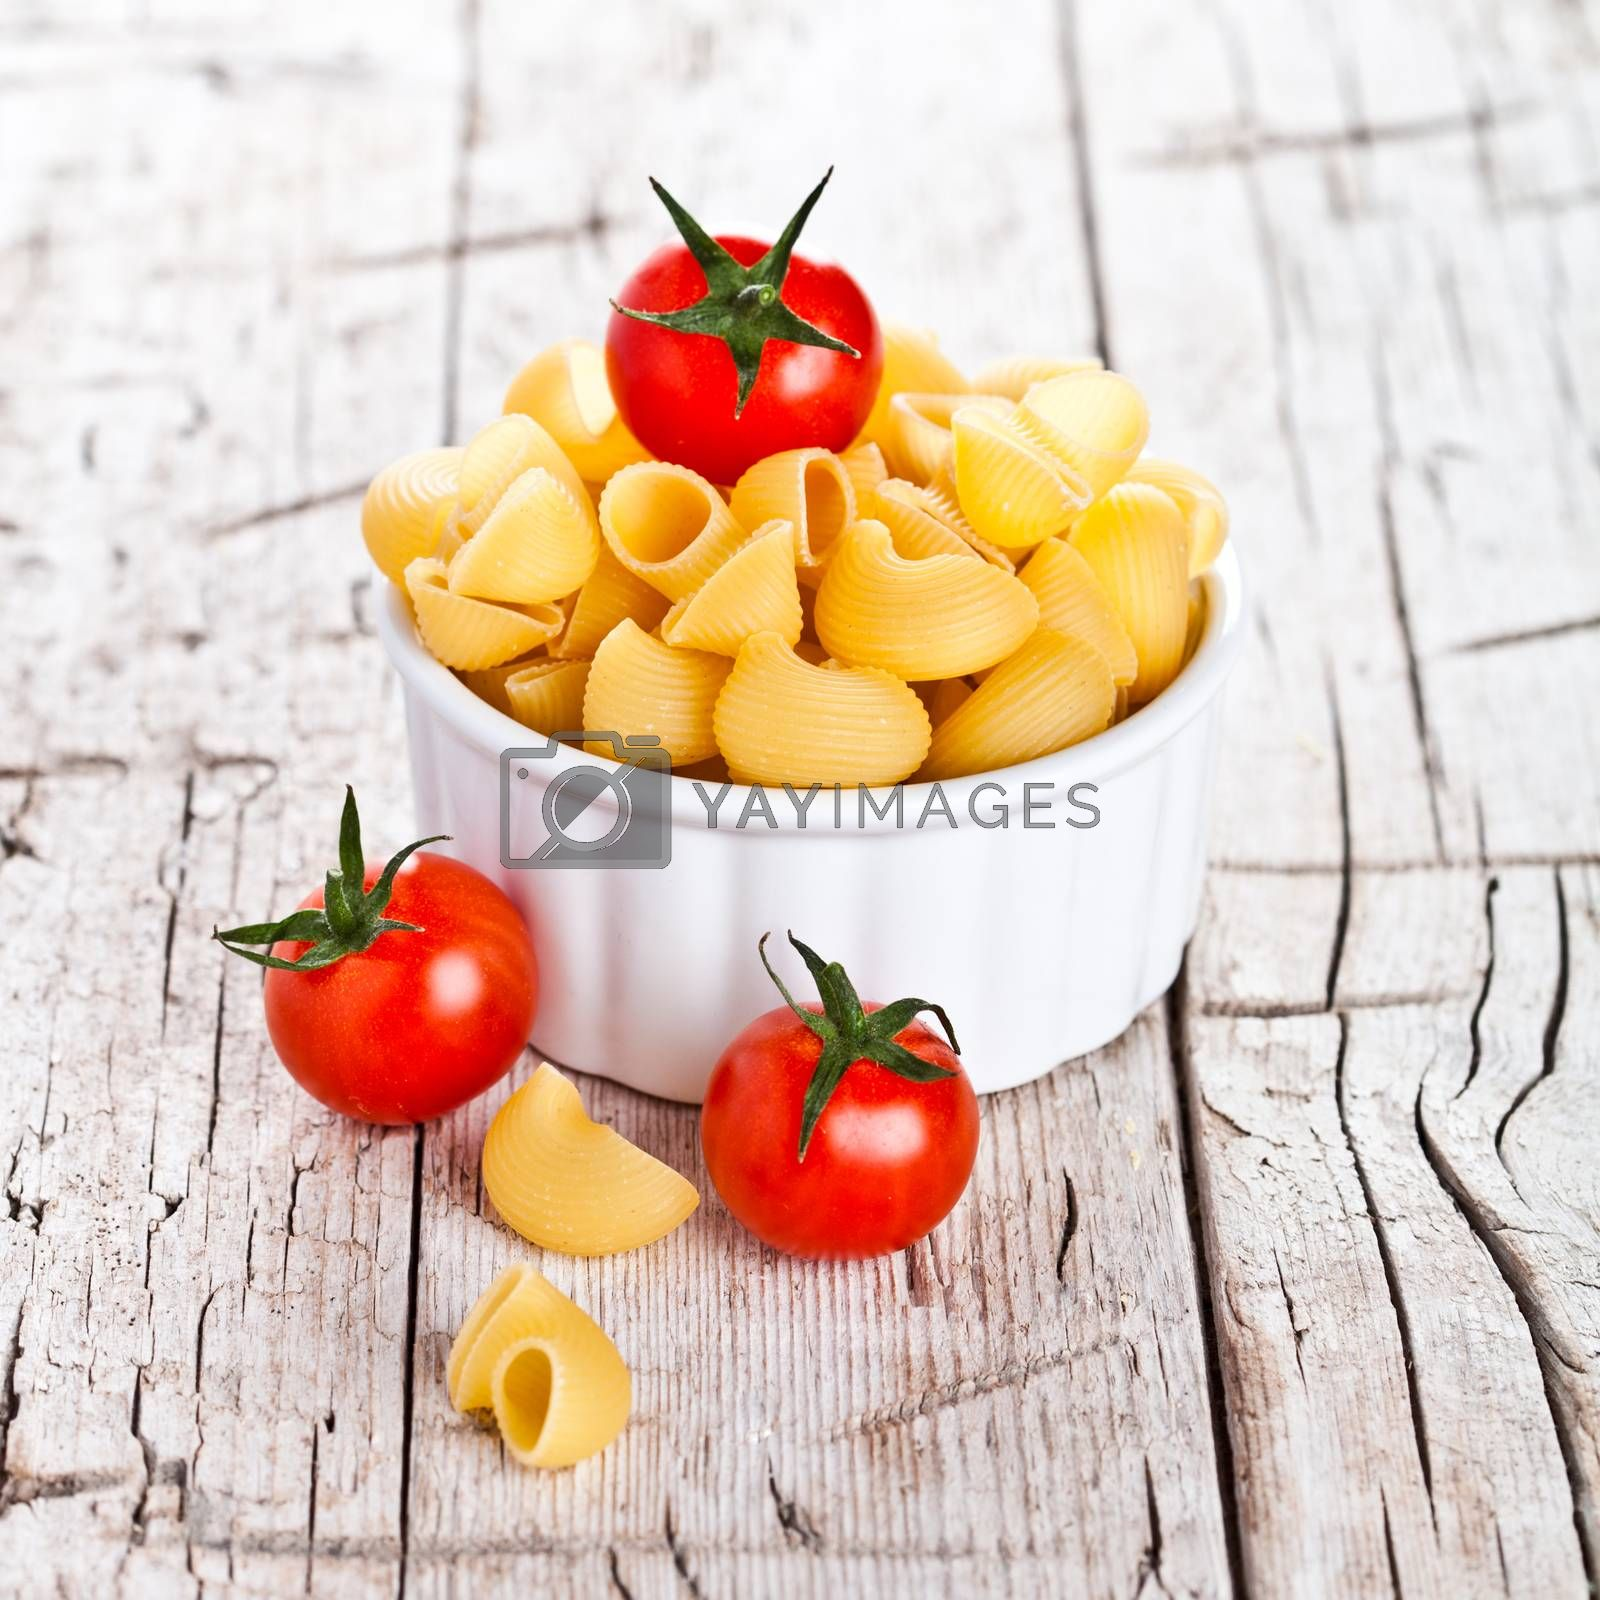 Royalty free image of uncooked pasta and cherry tomatoes in a bowl by marylooo